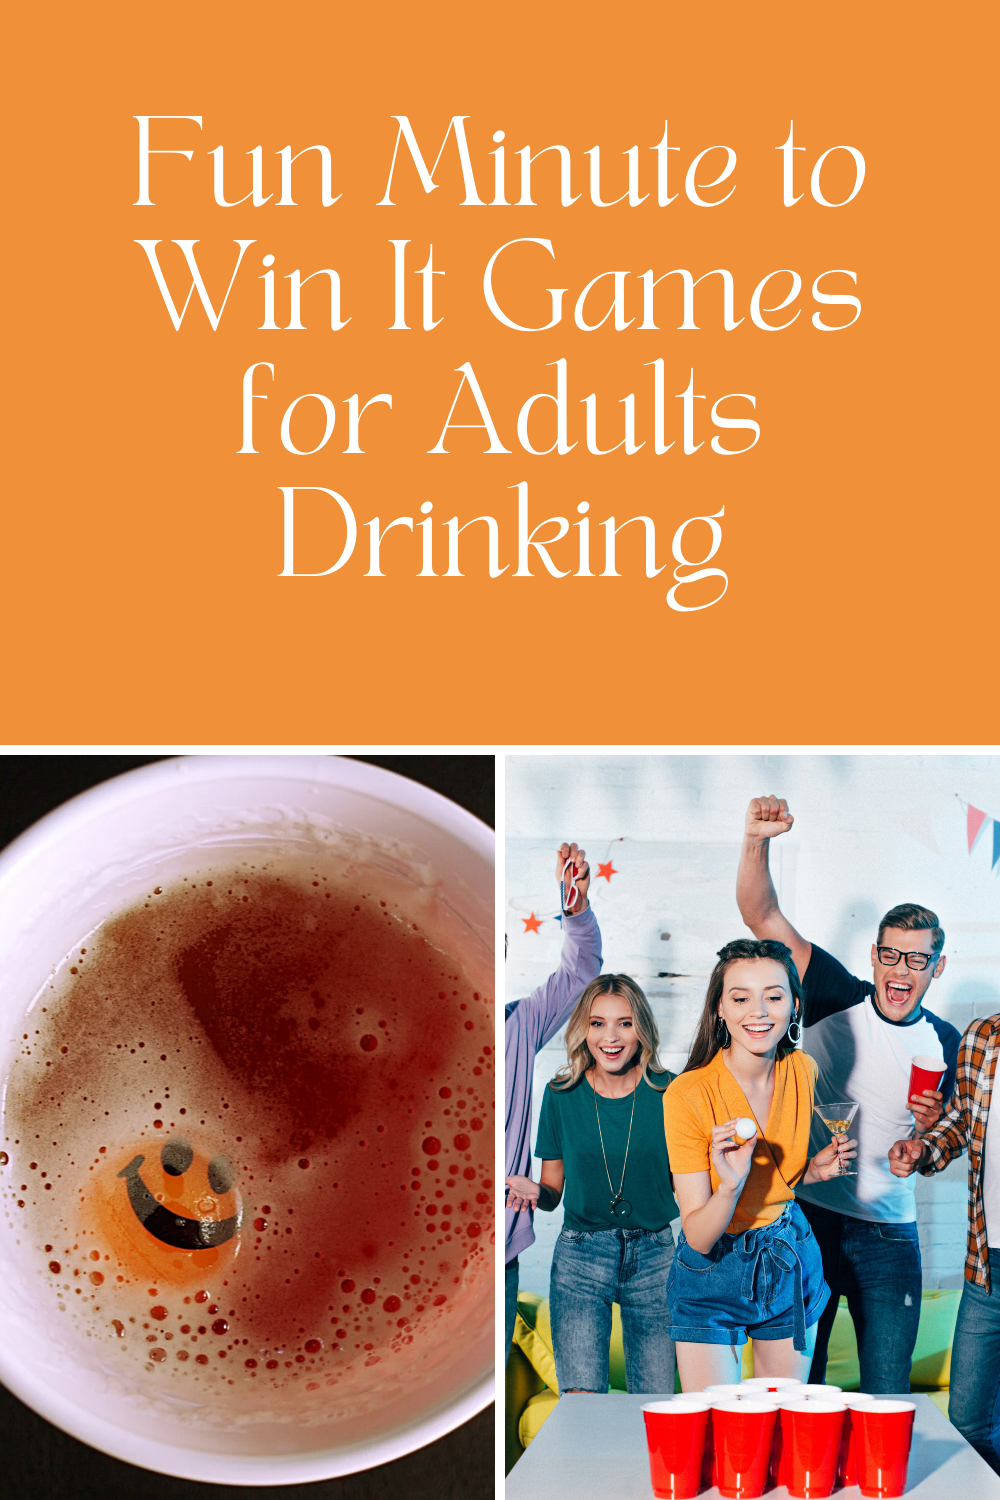 Minute to Win It Games for Adults Drinking